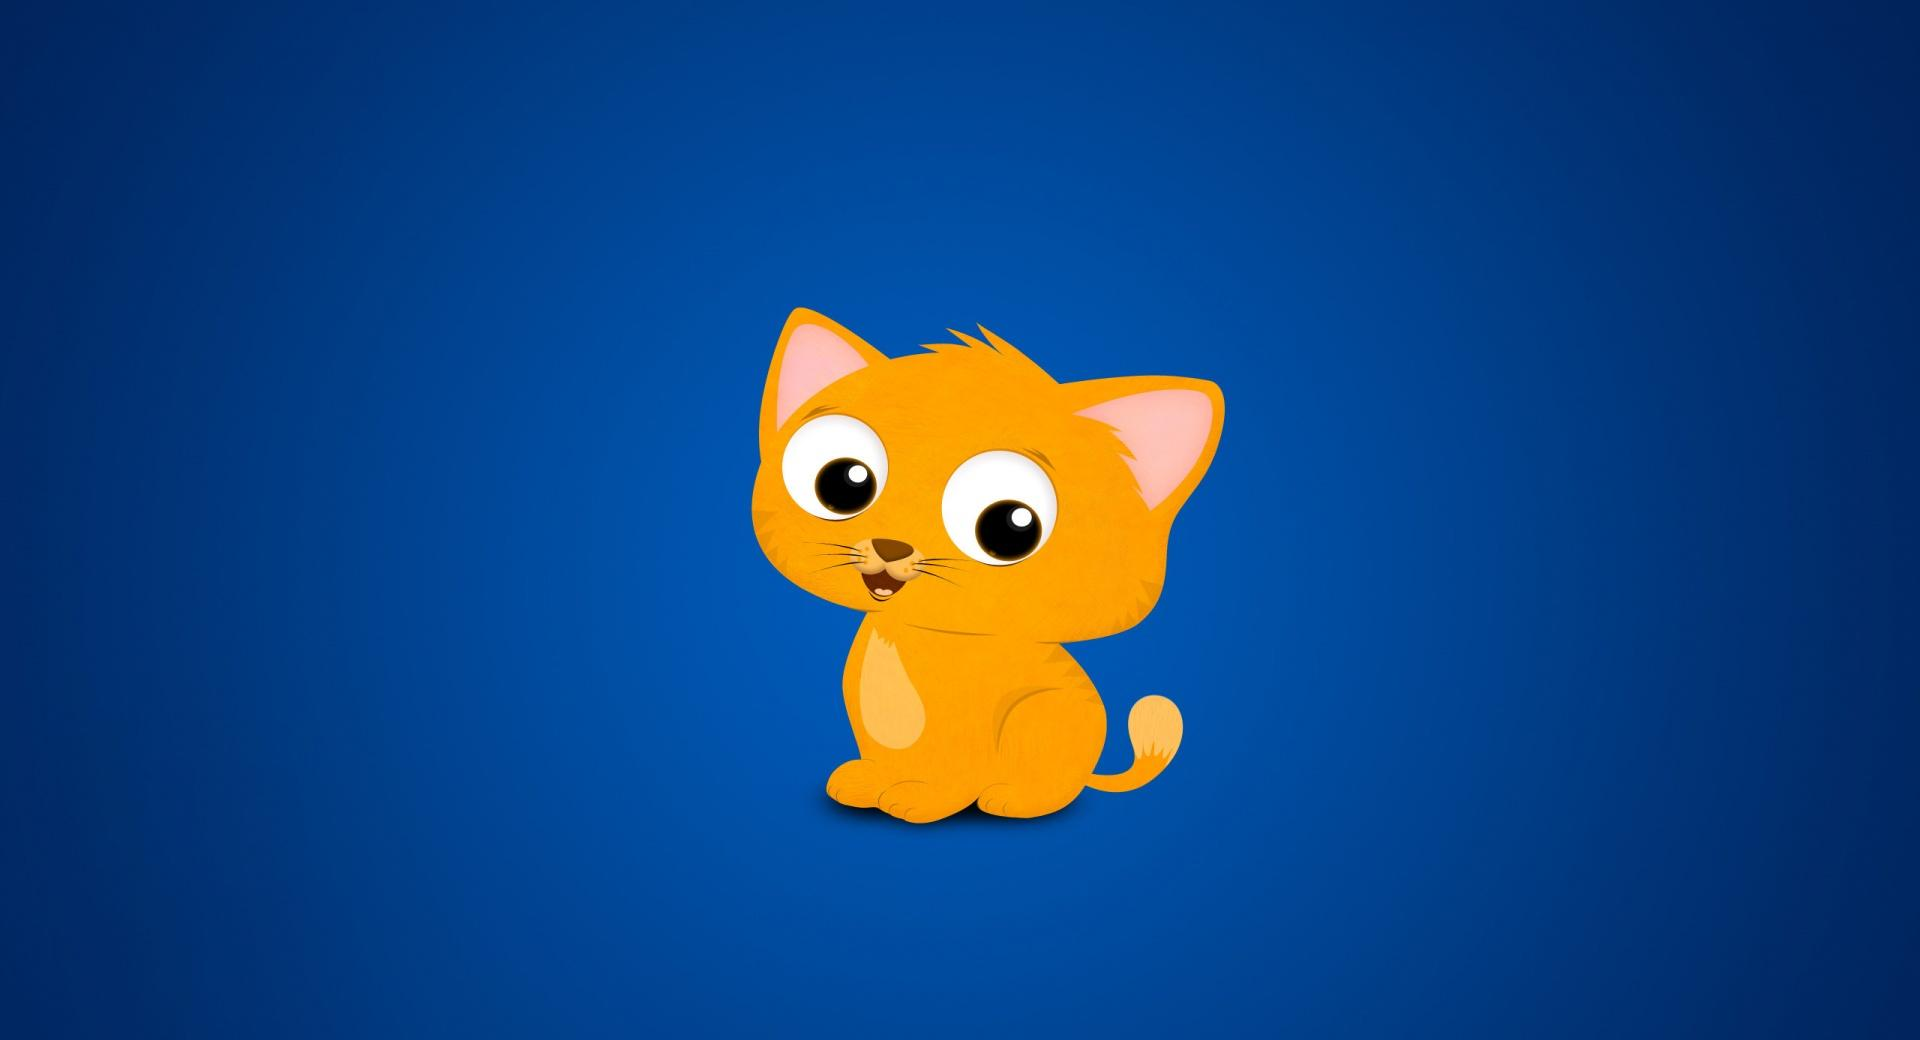 Cartoon Kitten wallpapers HD quality